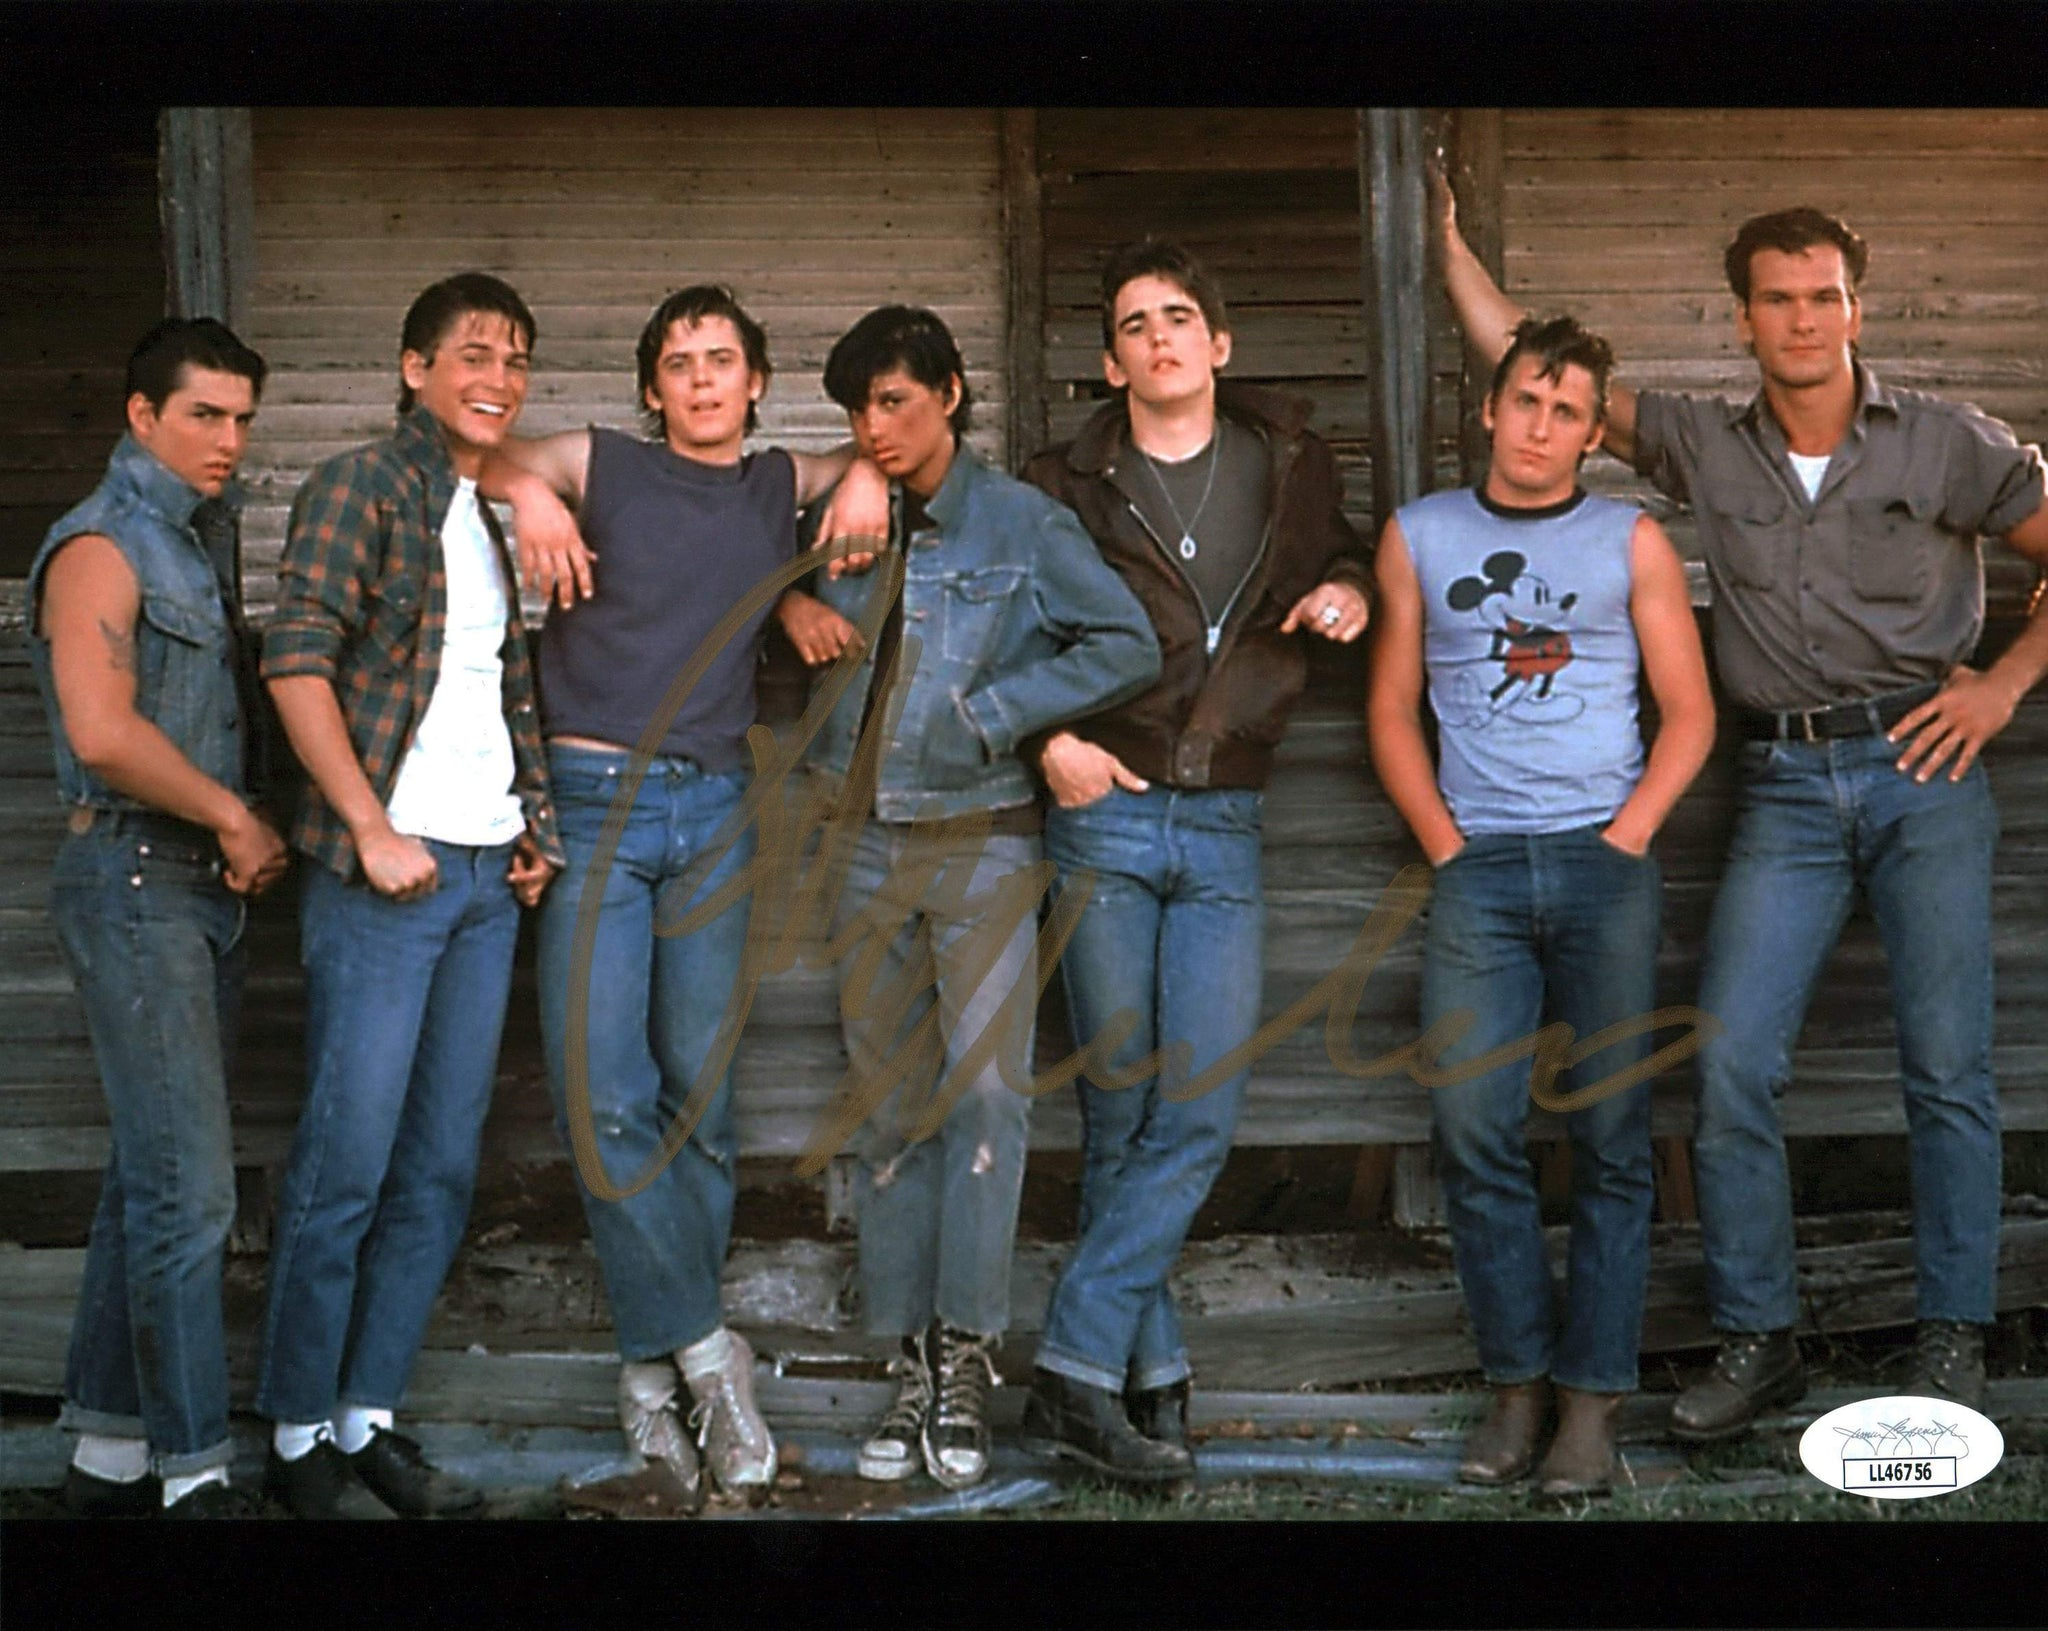 Ralph Macchio The Outsiders 8x10 Photo Signed Autographed JSA Certified COA Auto GalaxyCon